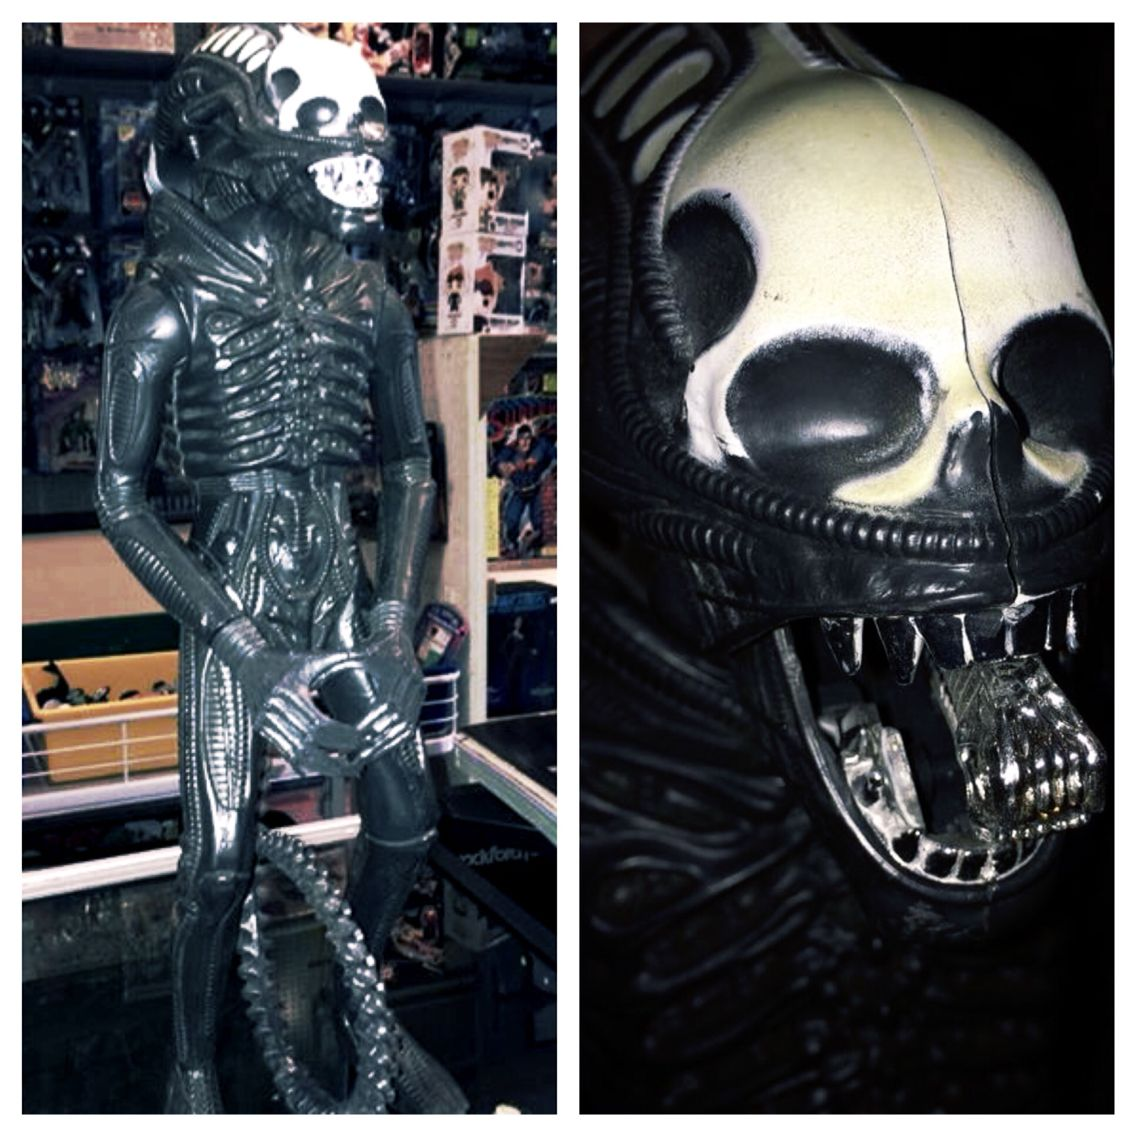 "This just in! #Vintage '79 #Alien 18"" figure! An awesome piece and mouth still works!   http://youtu.be/uKSv85mJEmY"